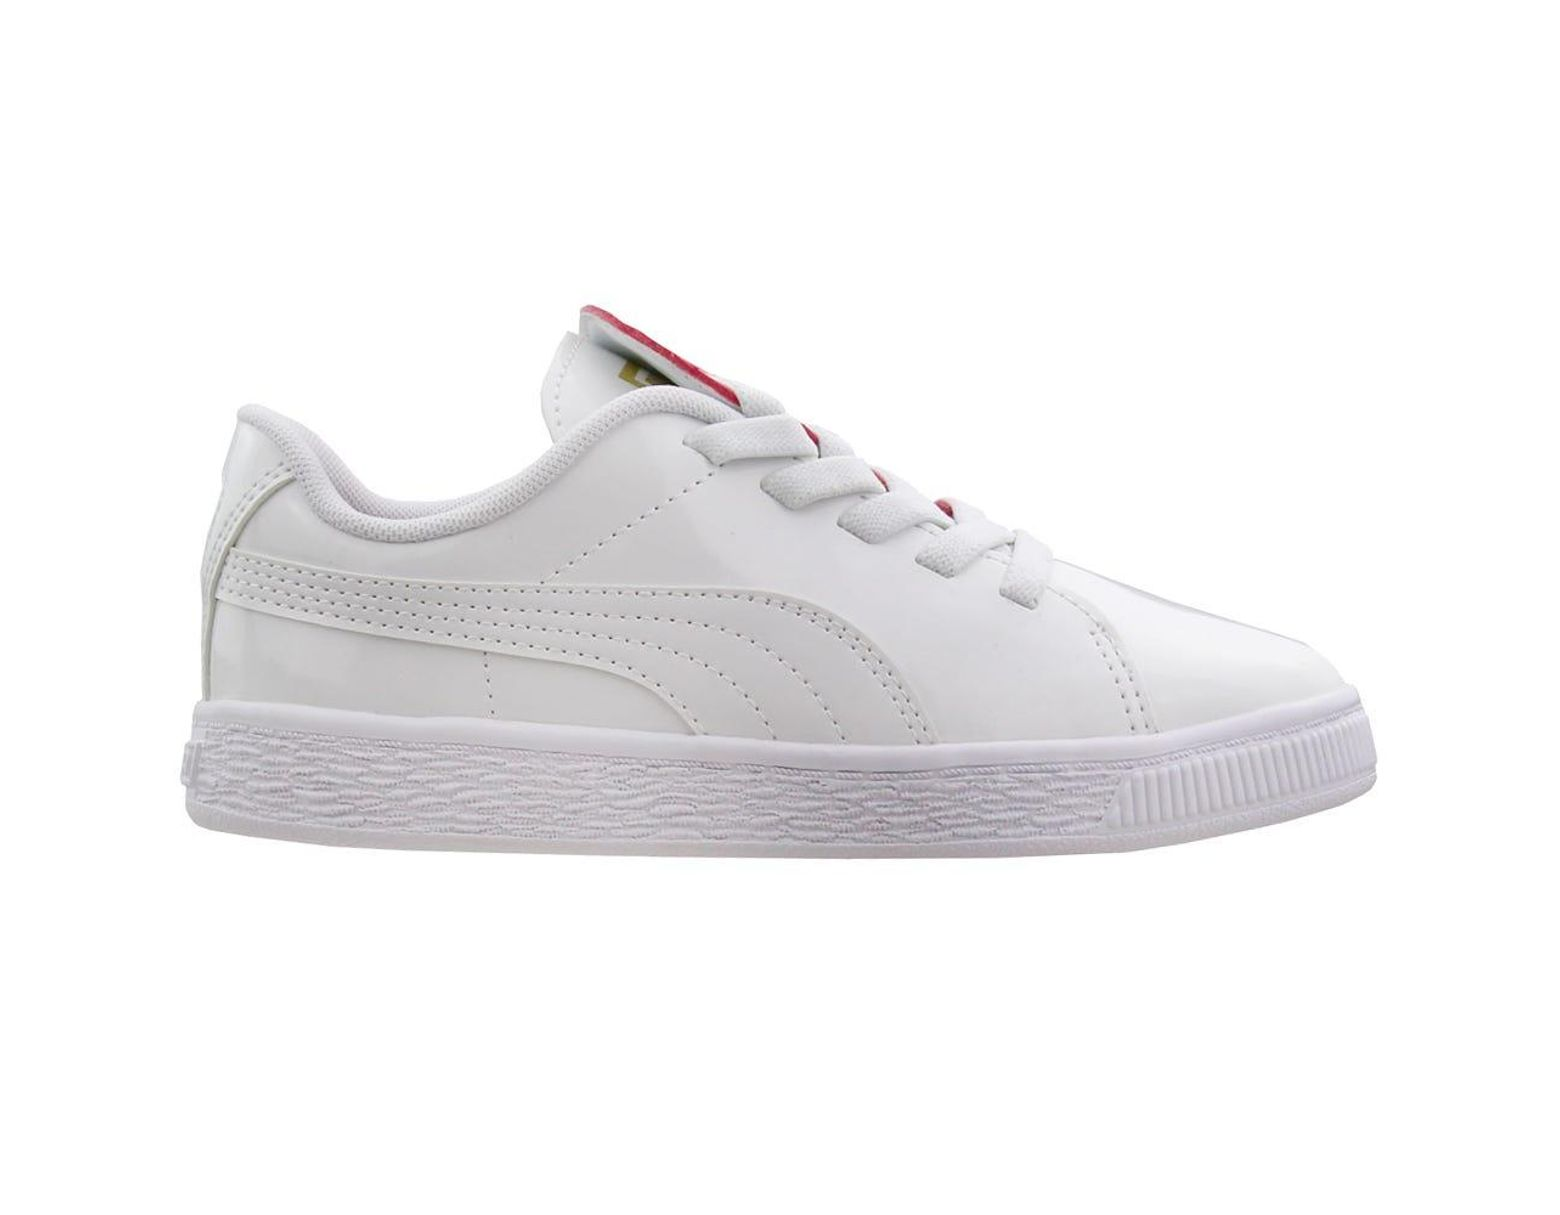 Preschool Patent Crush Women's Basket White Ac 7f6ygbvIY